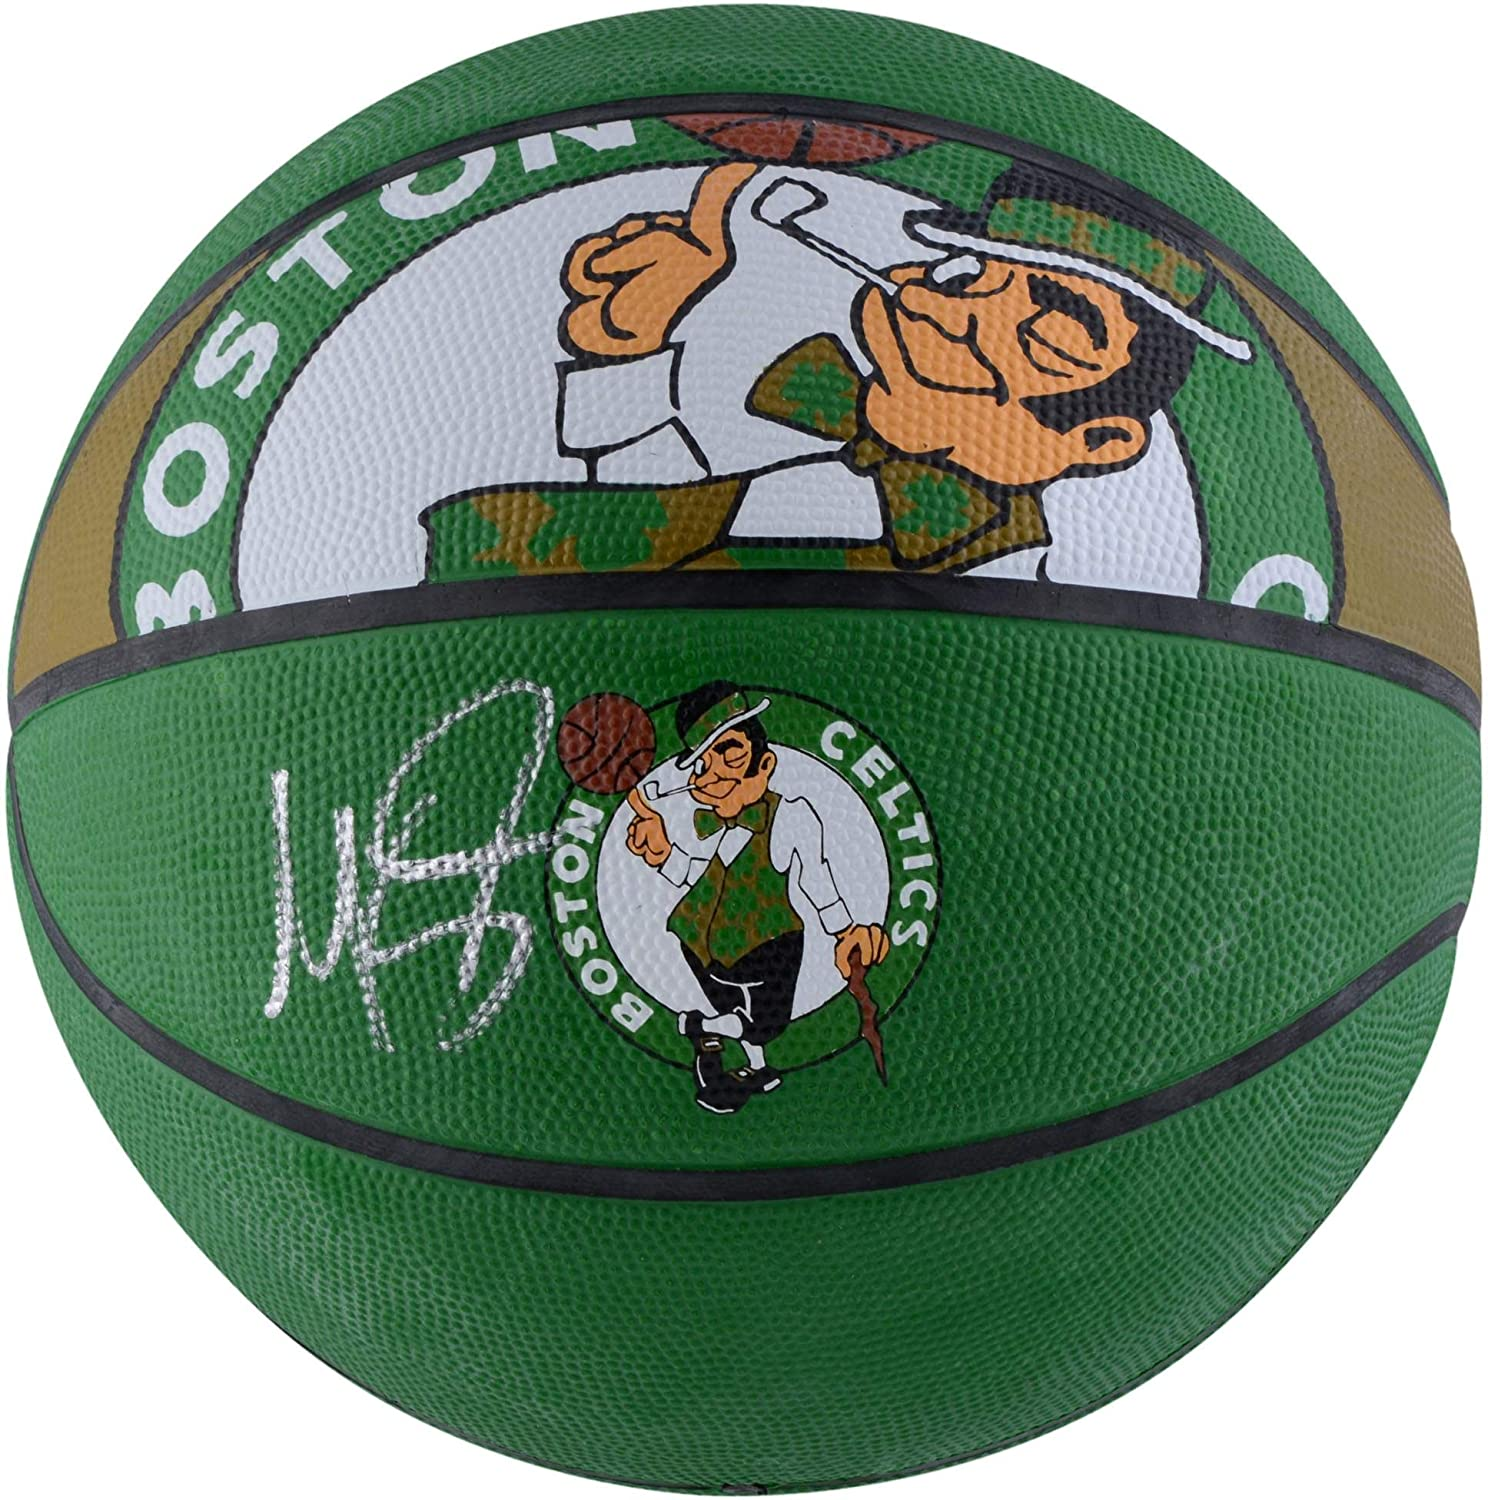 Marcus Smart Boston Celtics Autographed Spalding Courtside Basketball - Fanatics Authentic Certified